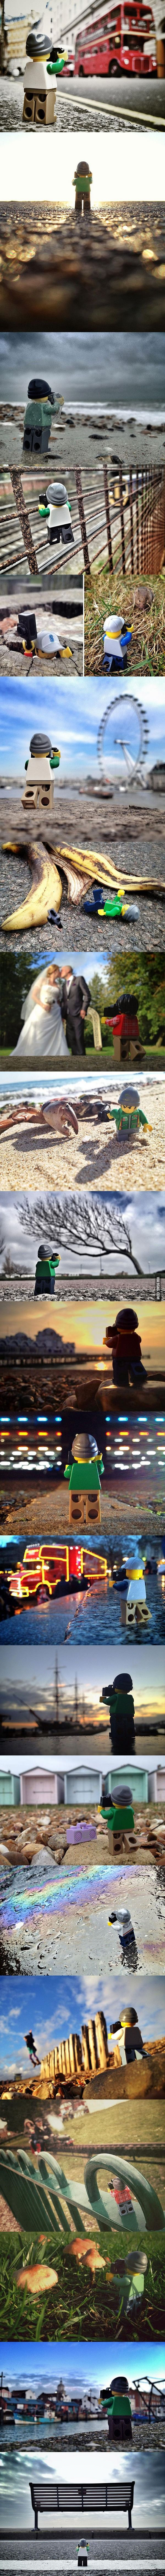 Andrew Whyte spent 365 days following this little LEGO photographer around and taking pictures. <--- This is the cutest thing I've seen today.